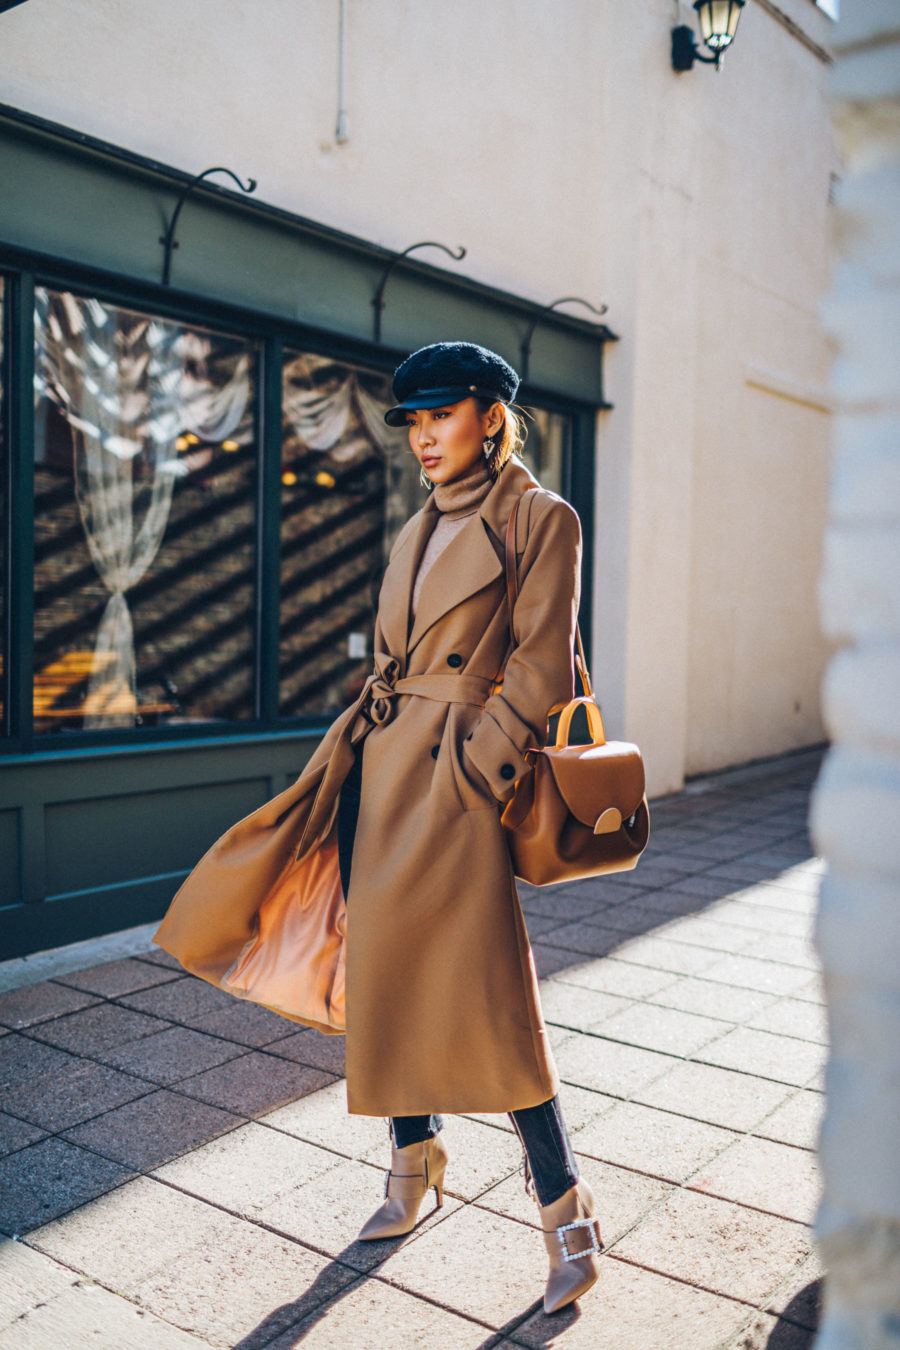 Clothing items worth investing in - Belted Camel Coat with Dark Denim Baker Boy Cap and Satchel // Notjessfashion.com